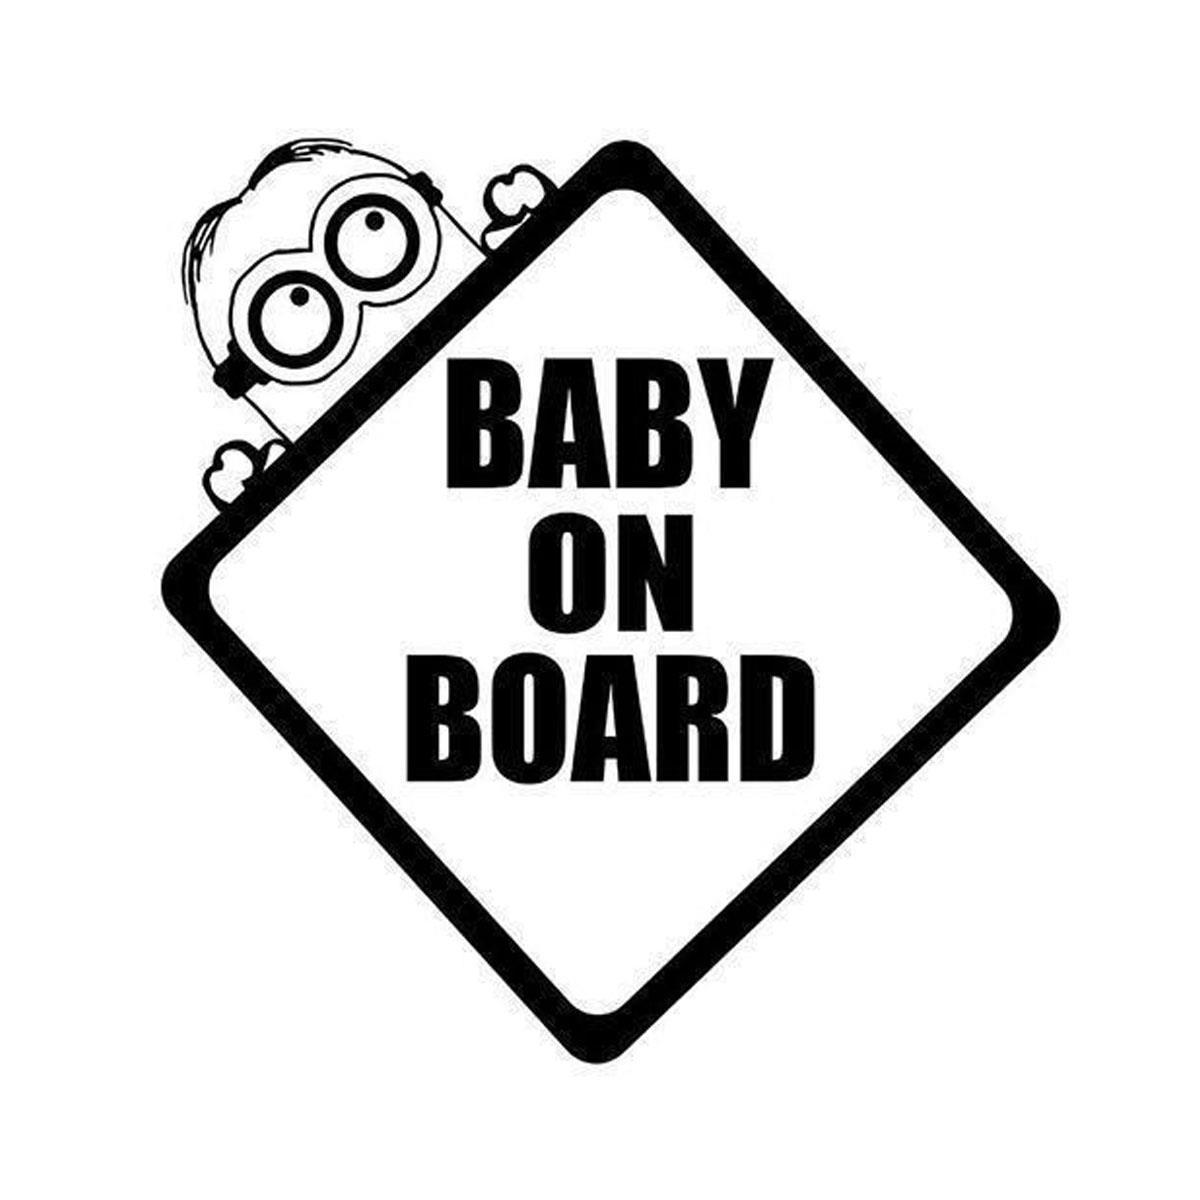 Baby On Board Minion Sticker Decal Vinyl Car Window Windscreen Wall Home Bedroom Children Refrigerator Bumper XMAS Decor Gift